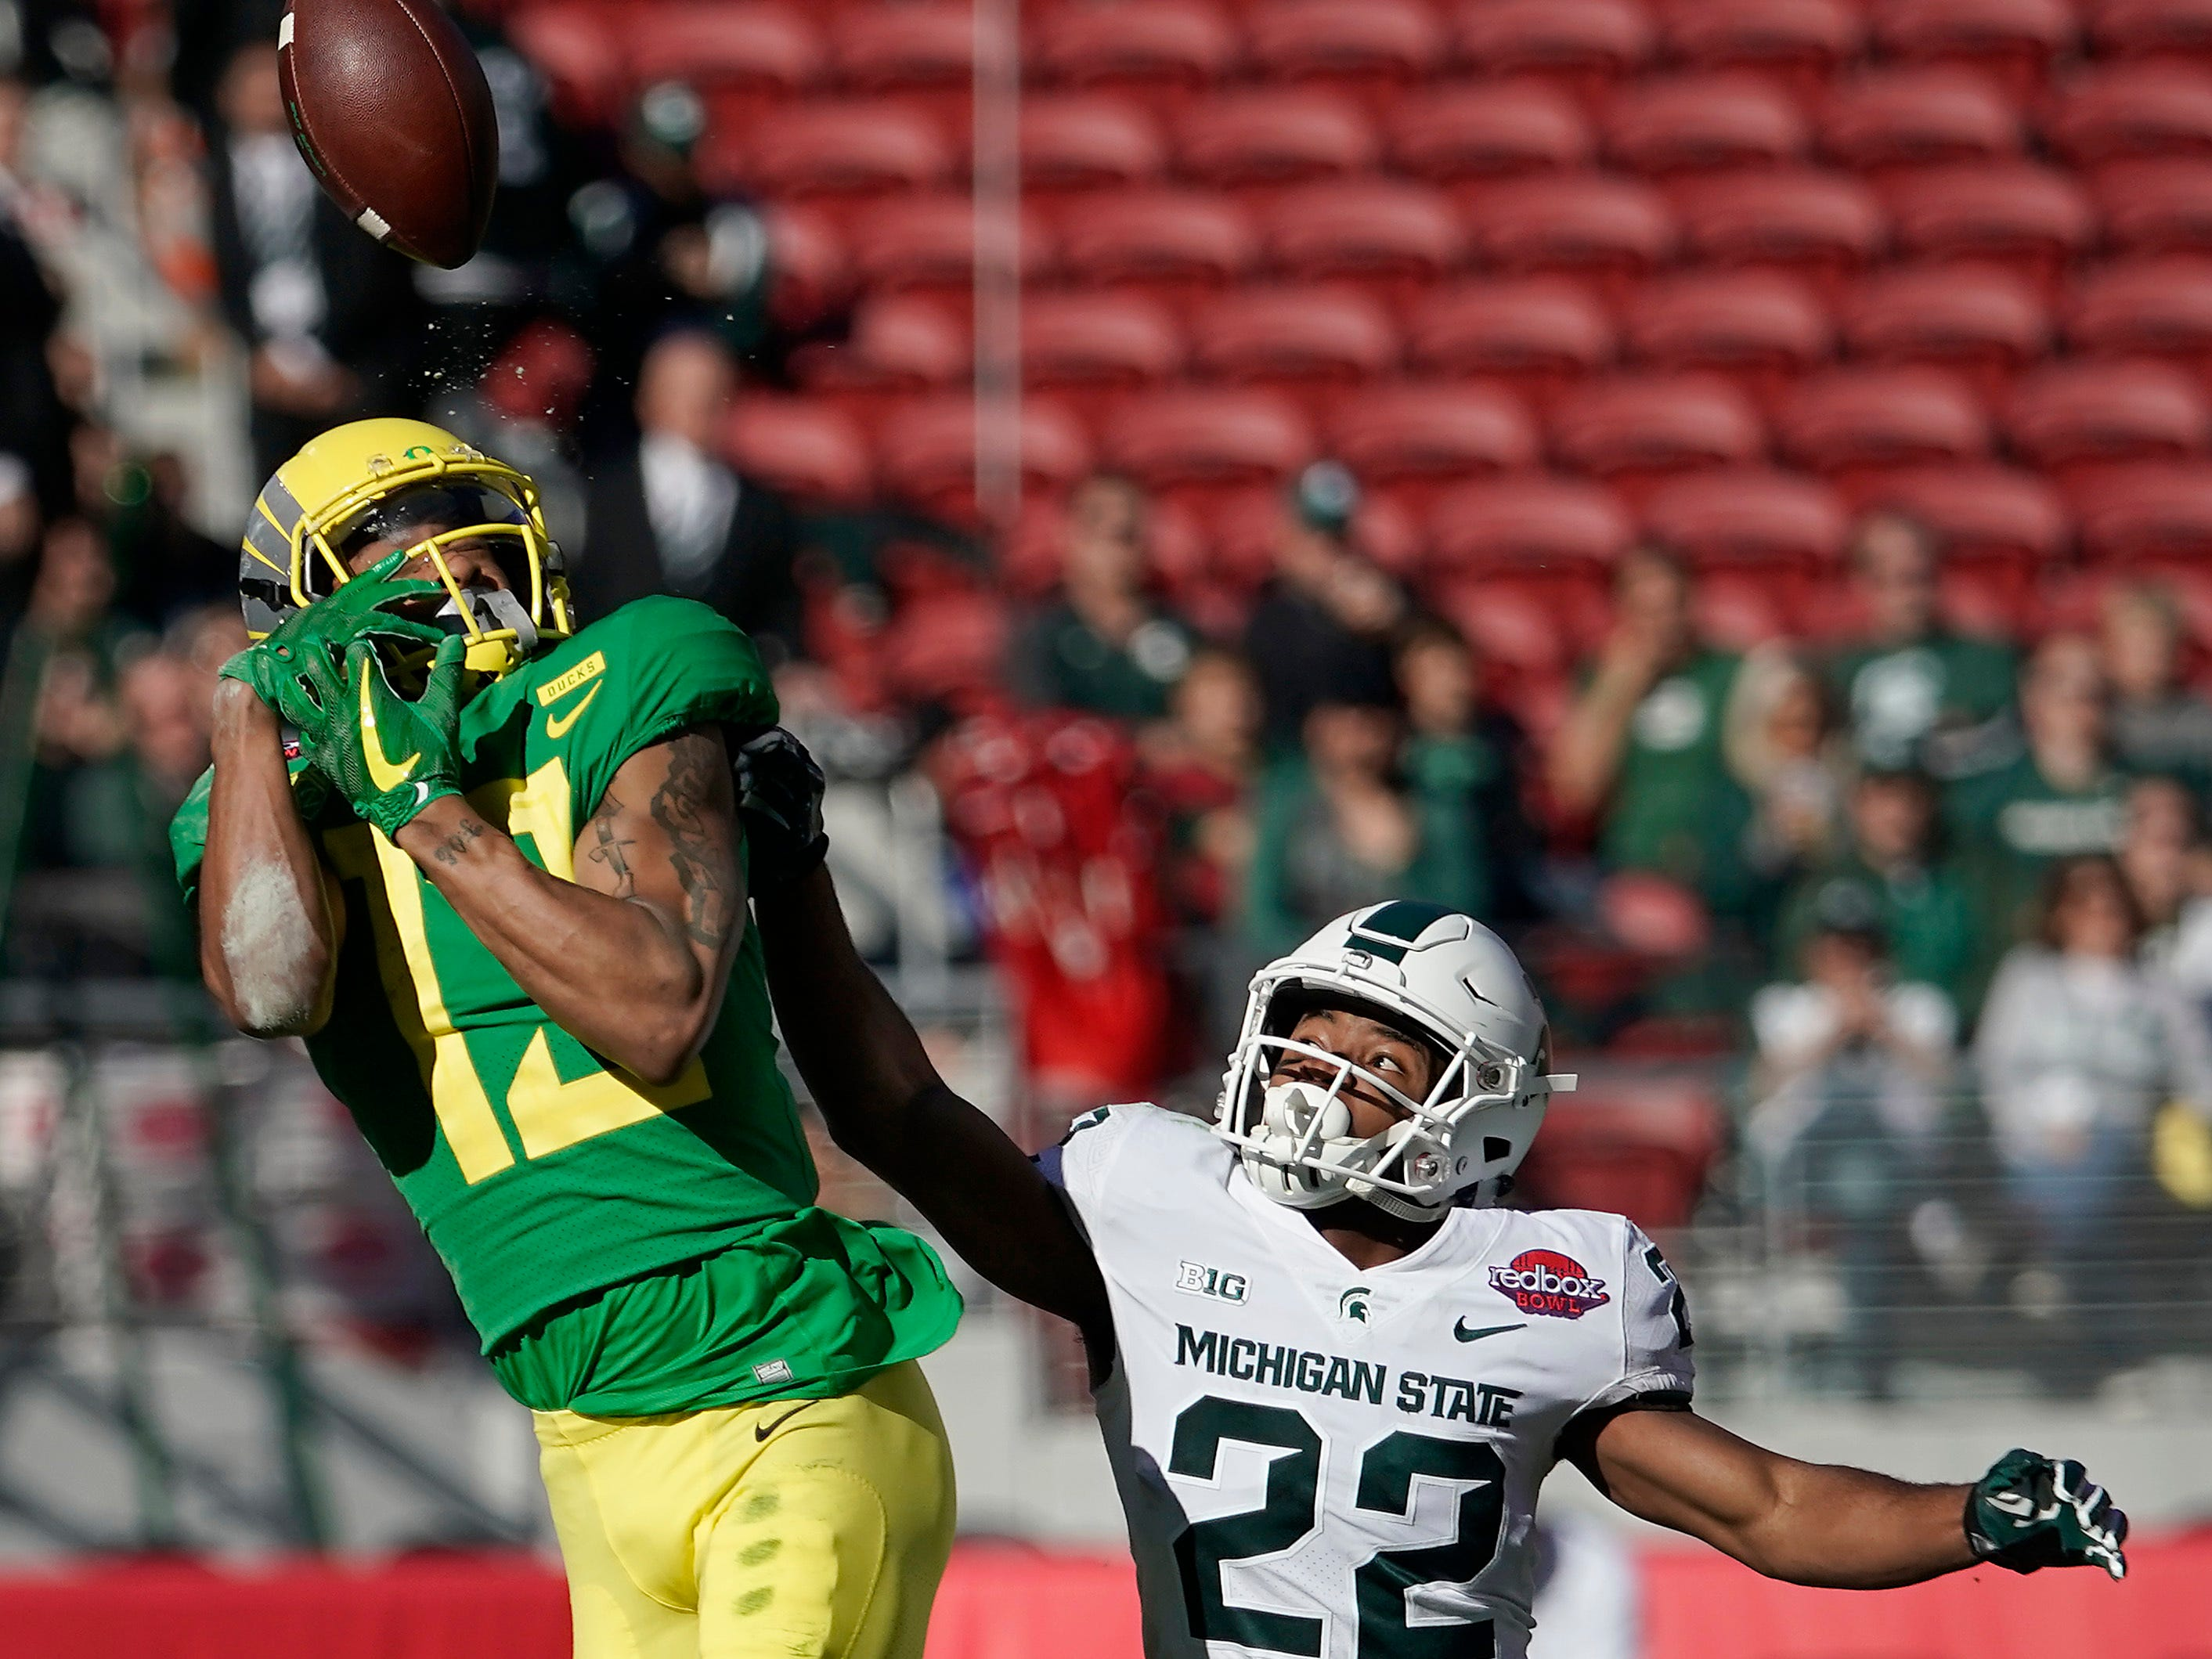 Oregon wide receiver Dillon Mitchell (13) cannot make a catch against Michigan State cornerback Josiah Scott (22) during the first half of the Redbox Bowl NCAA college football game Monday, Dec. 31, 2018, in Santa Clara, Calif.